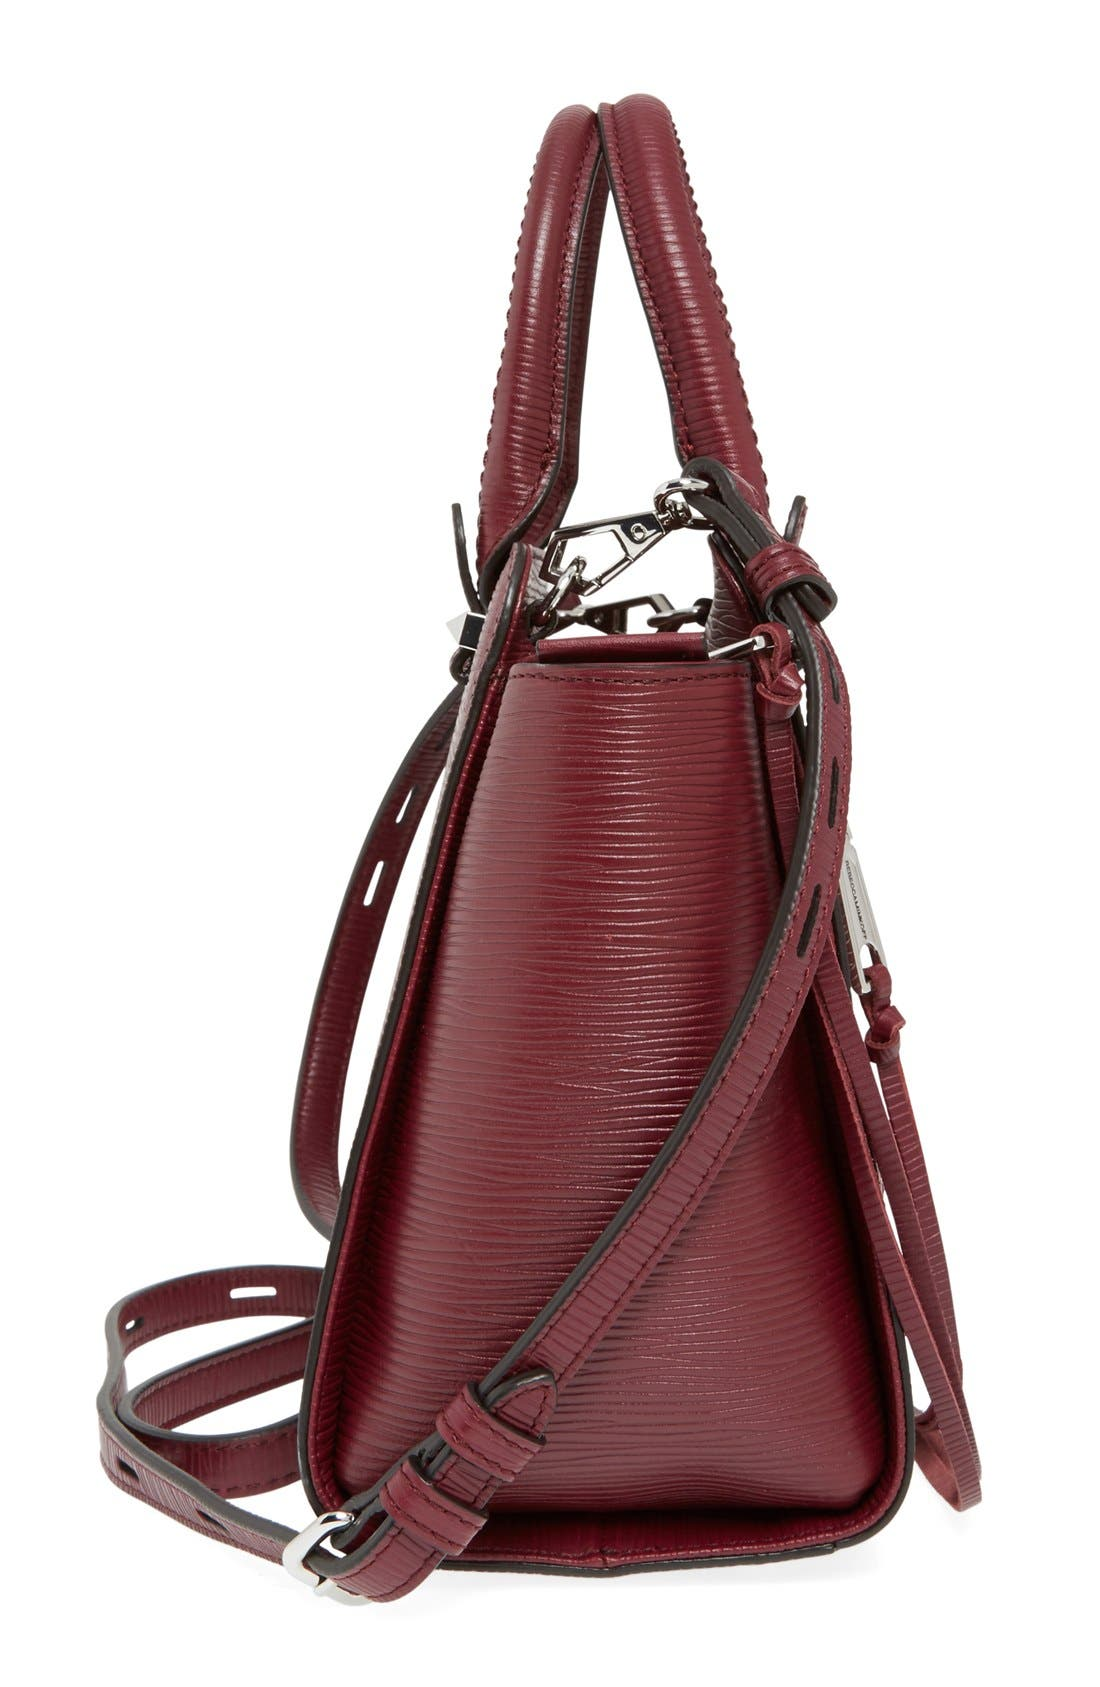 REBECCA MINKOFF,                             'Mini Avery' Tote,                             Alternate thumbnail 3, color,                             930